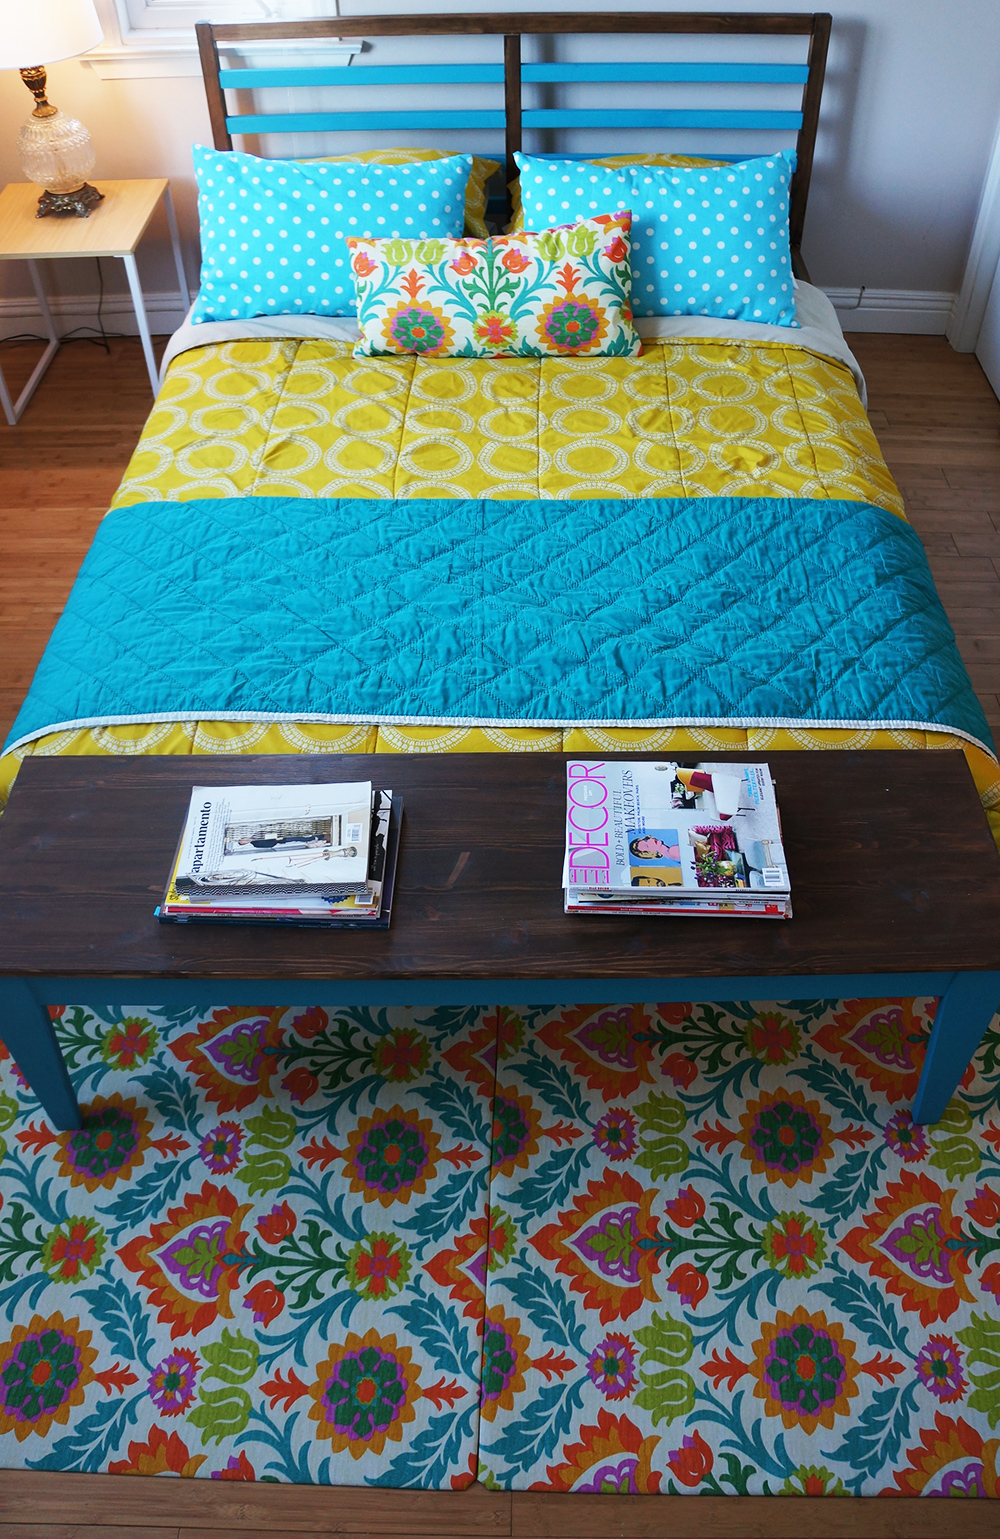 DIY Floor Rug Gives the Nuance of Dream Decoration - HomesFeed